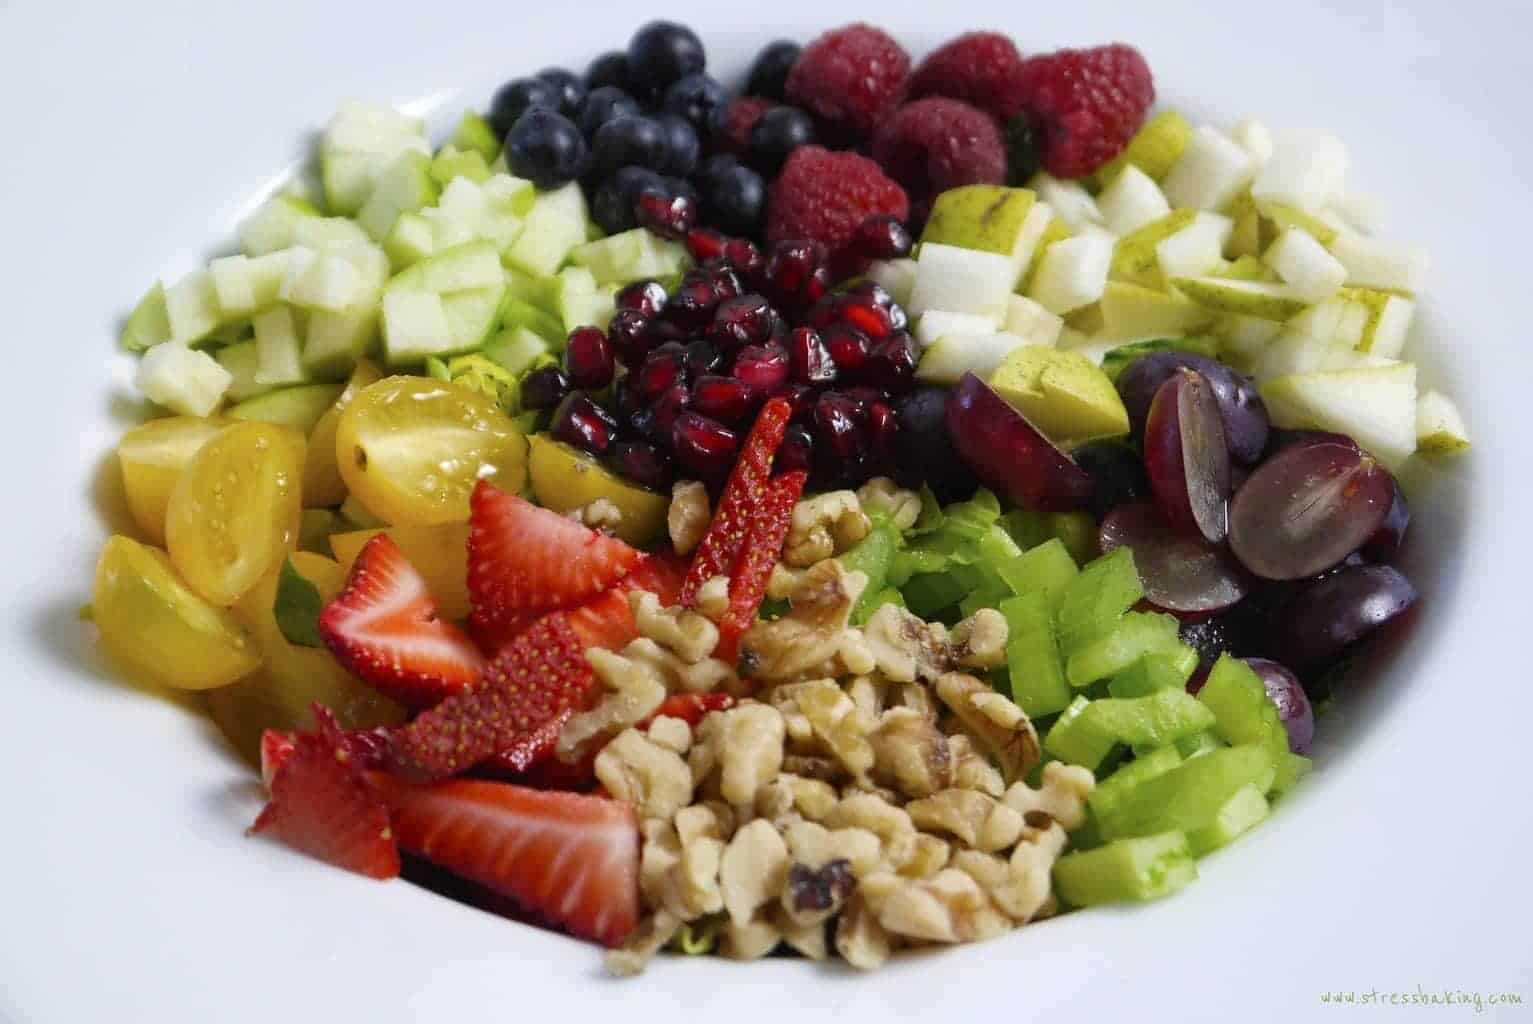 All the fruits and vegetables for salad chopped in a white bowl